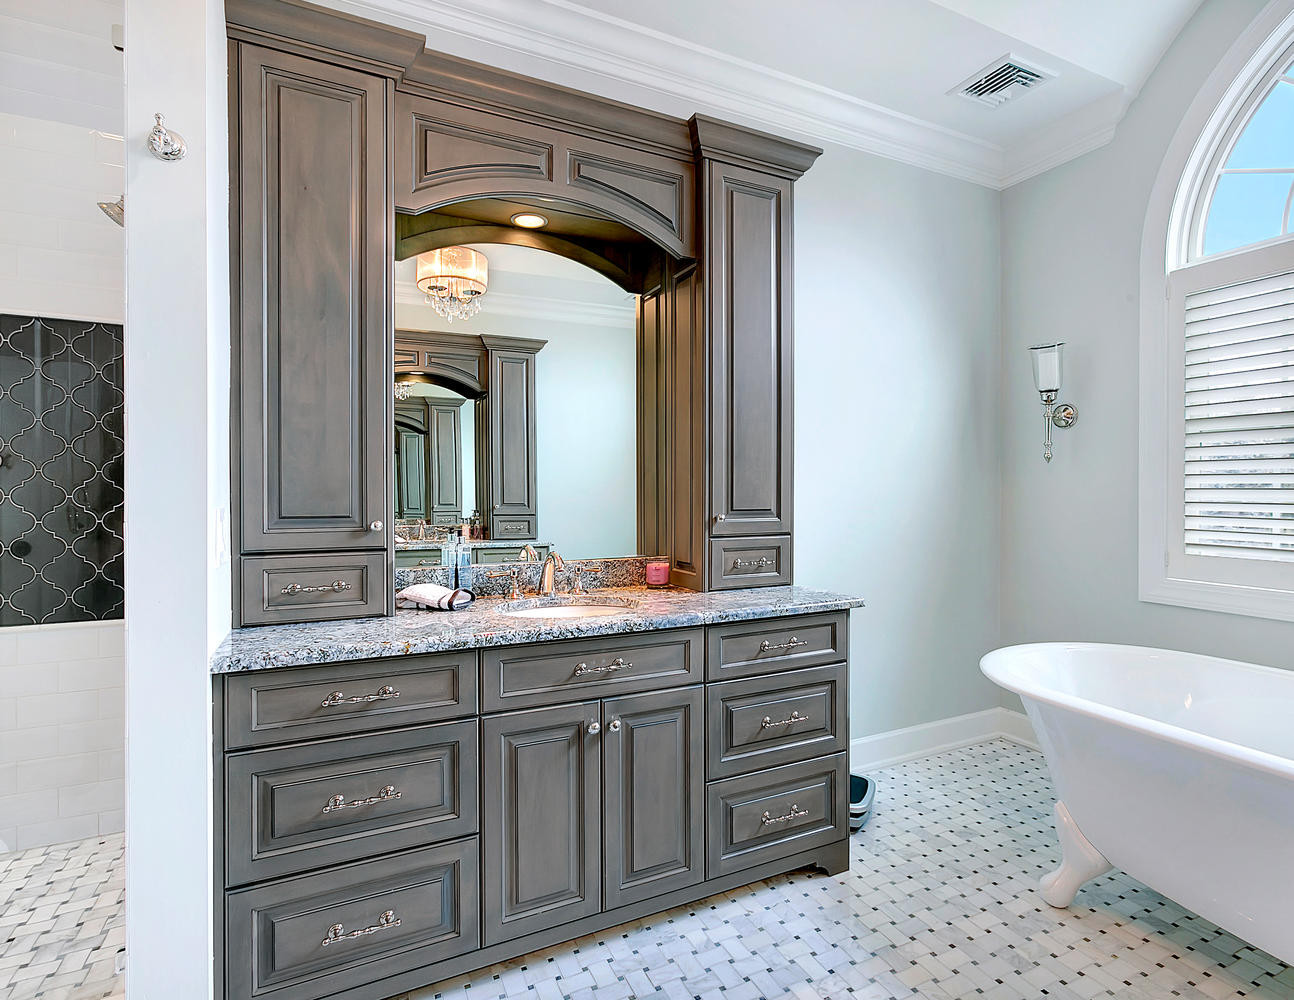 Kitchen cabinets central nj - Large Bath Vanity